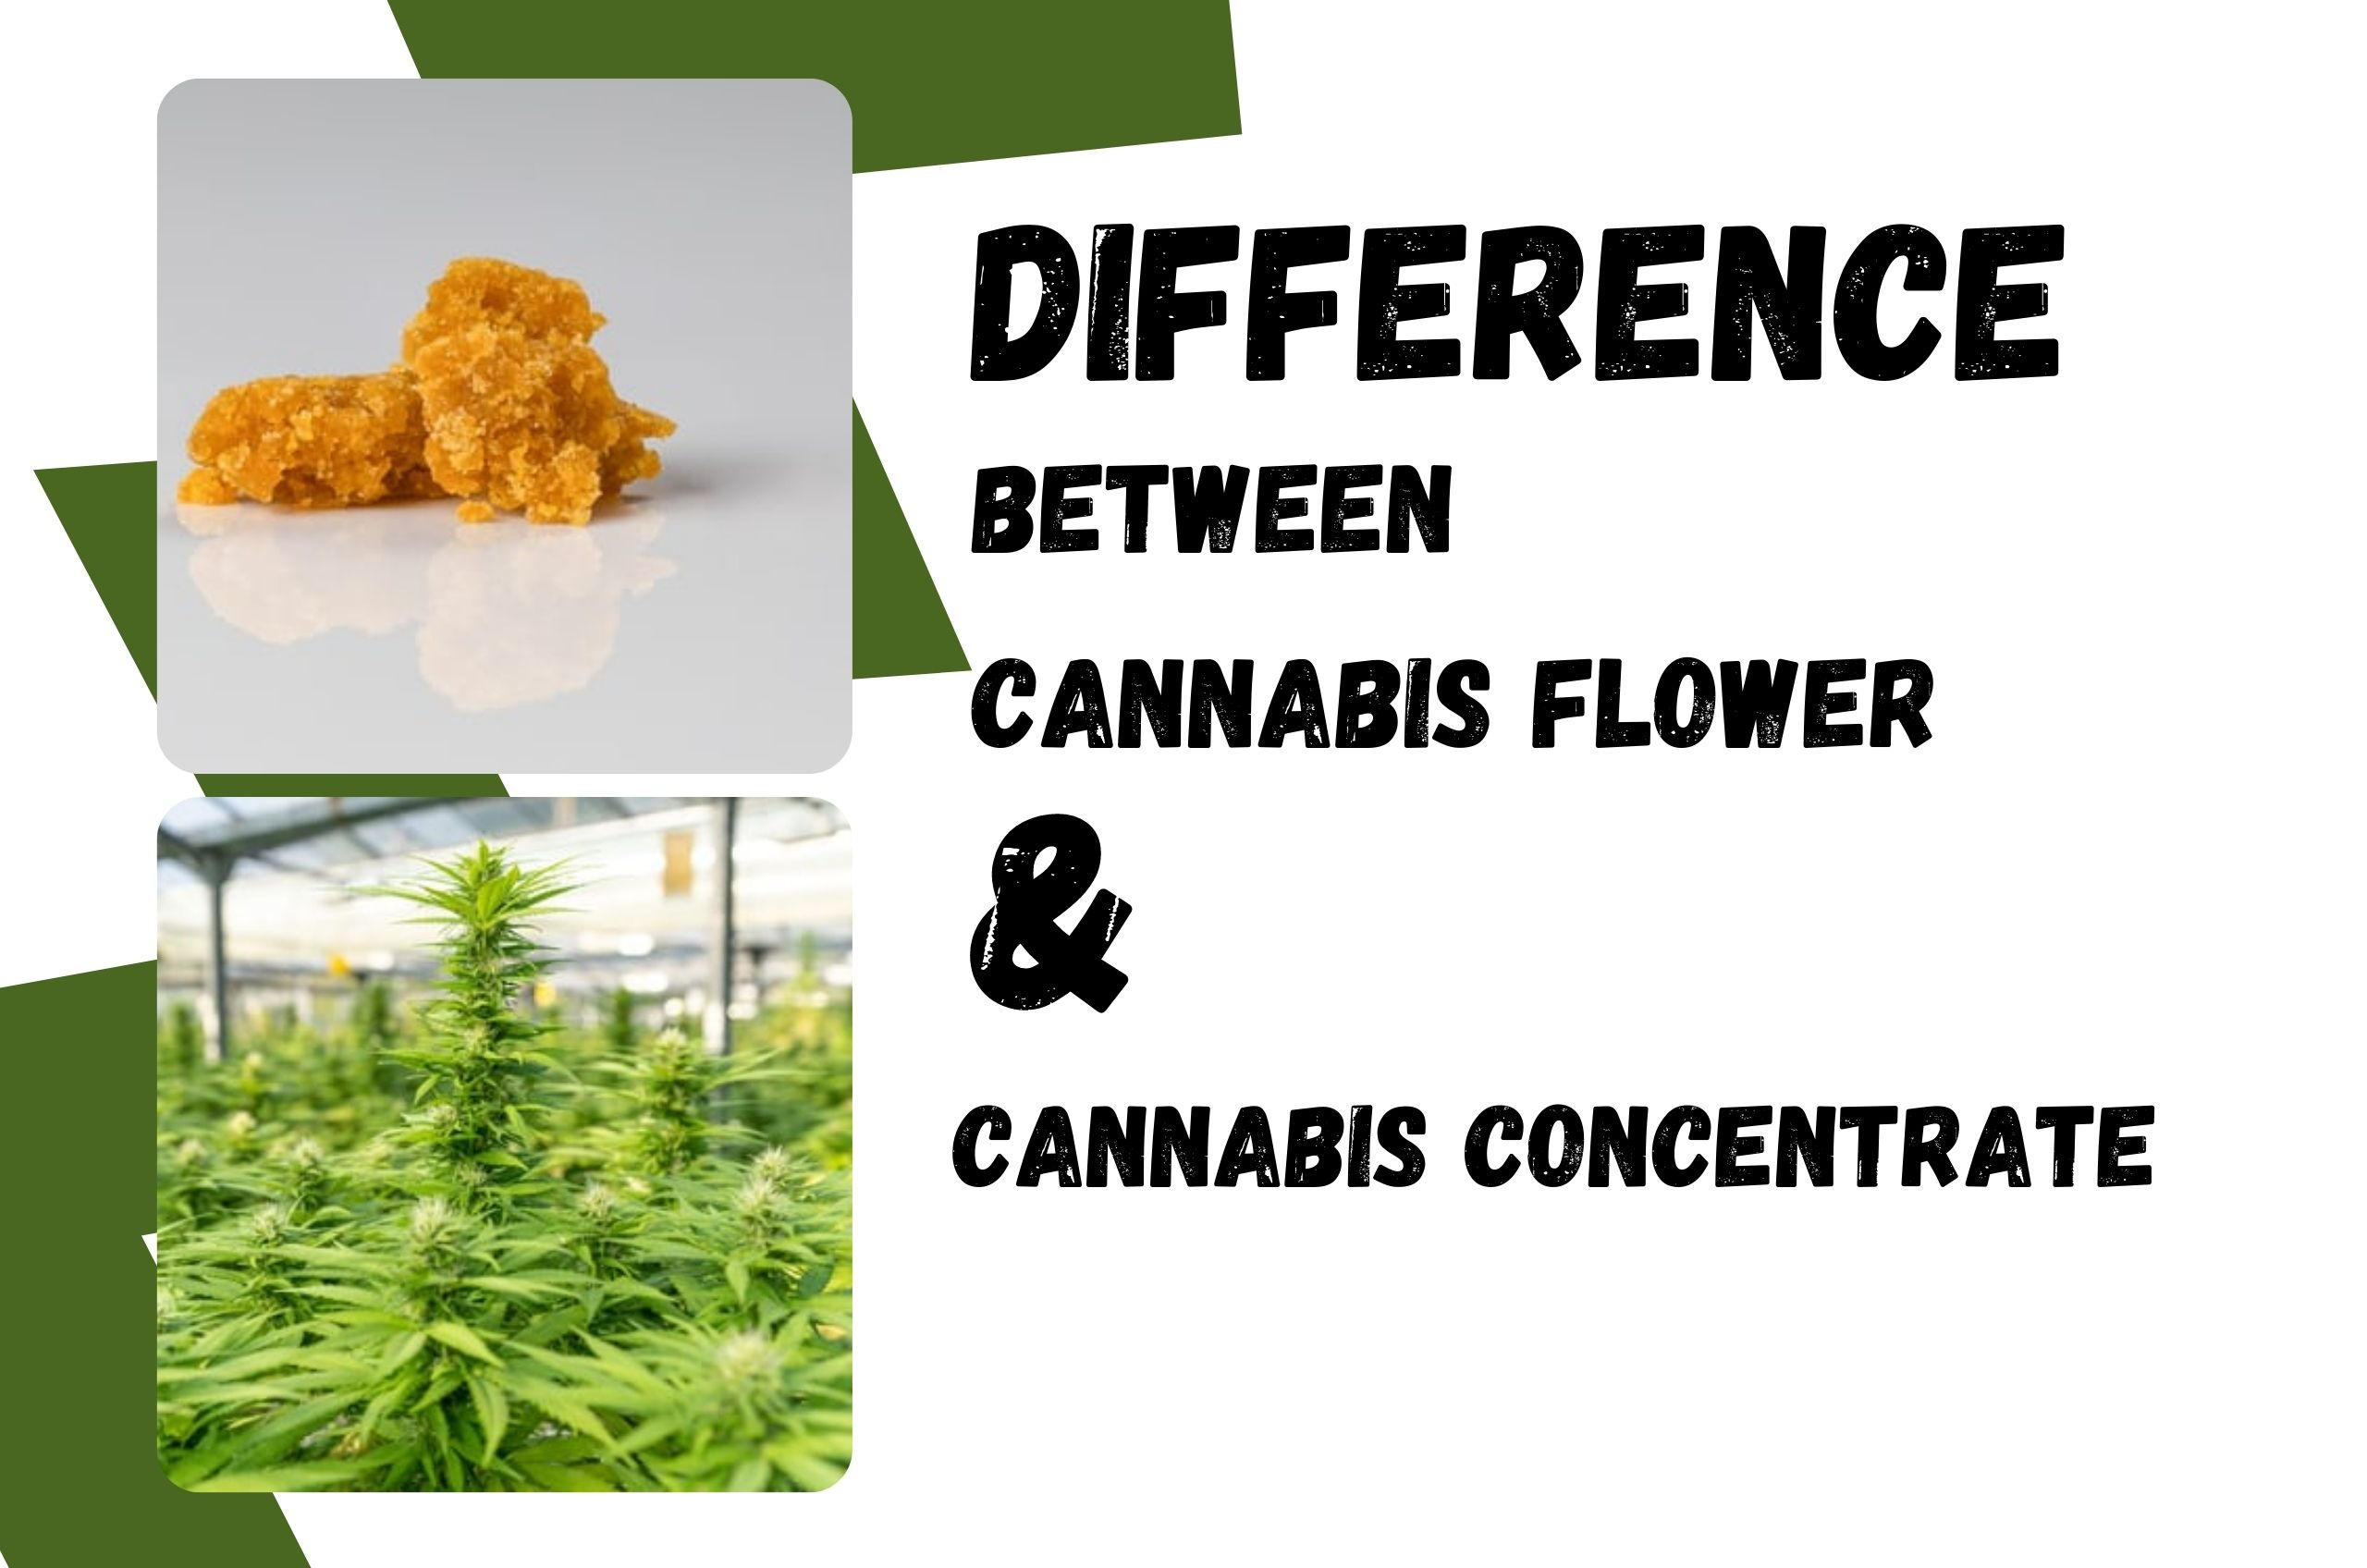 Cannabis Concentrates And Flowers: Differences by a Medical Marijuana Doctor